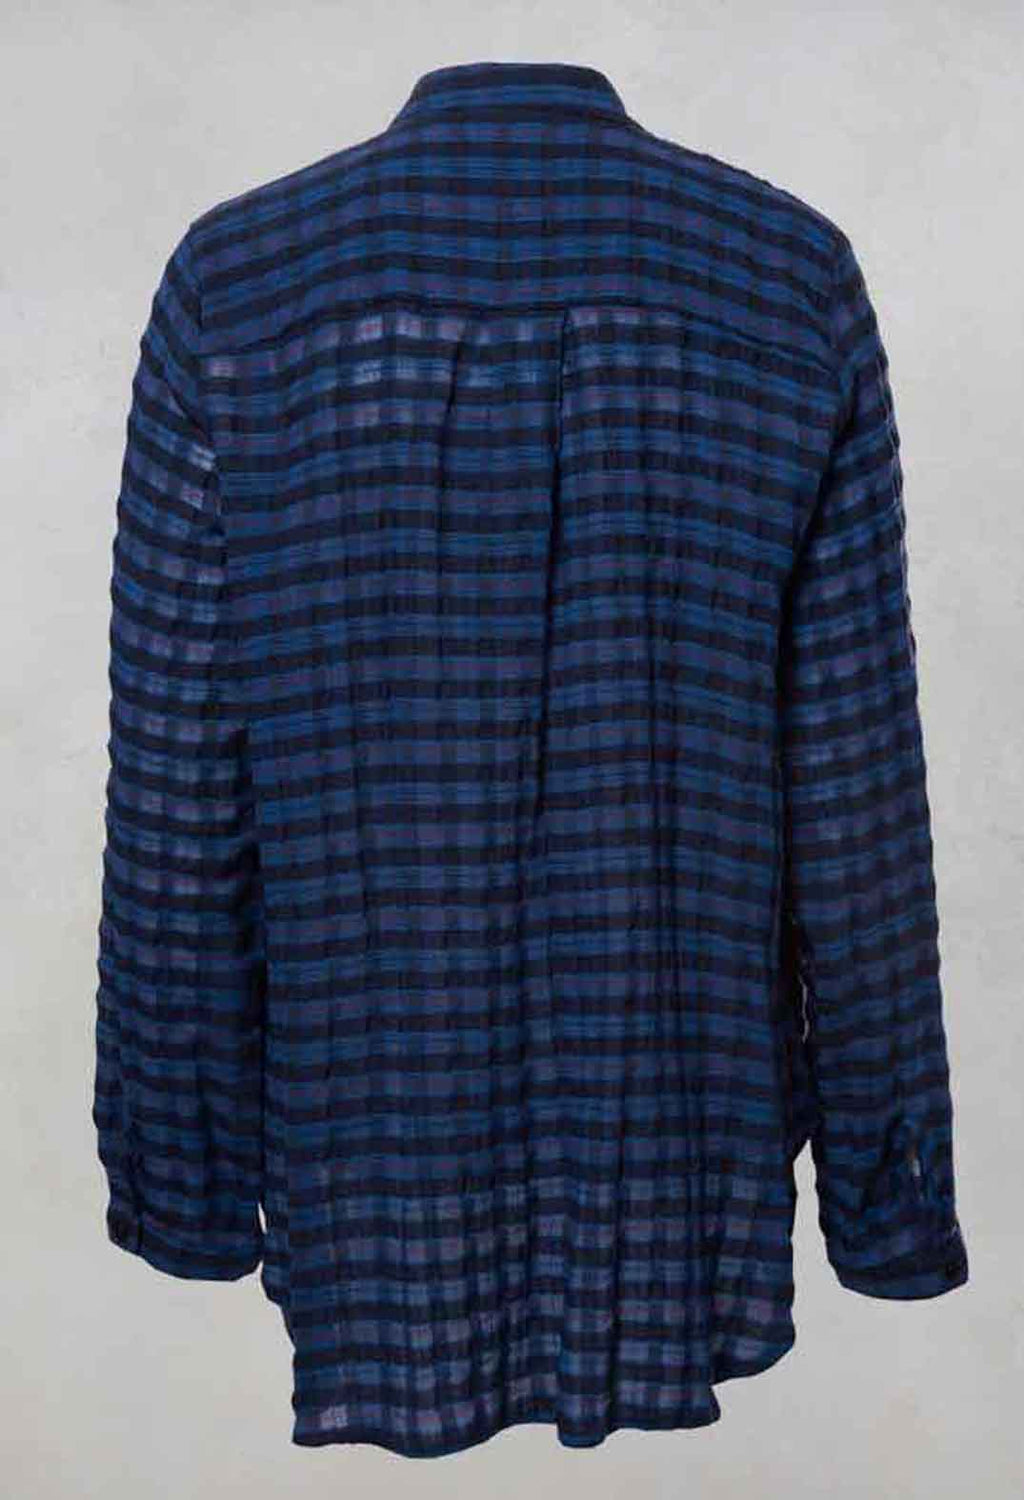 Check Shirt with Grandad Collar in Blue